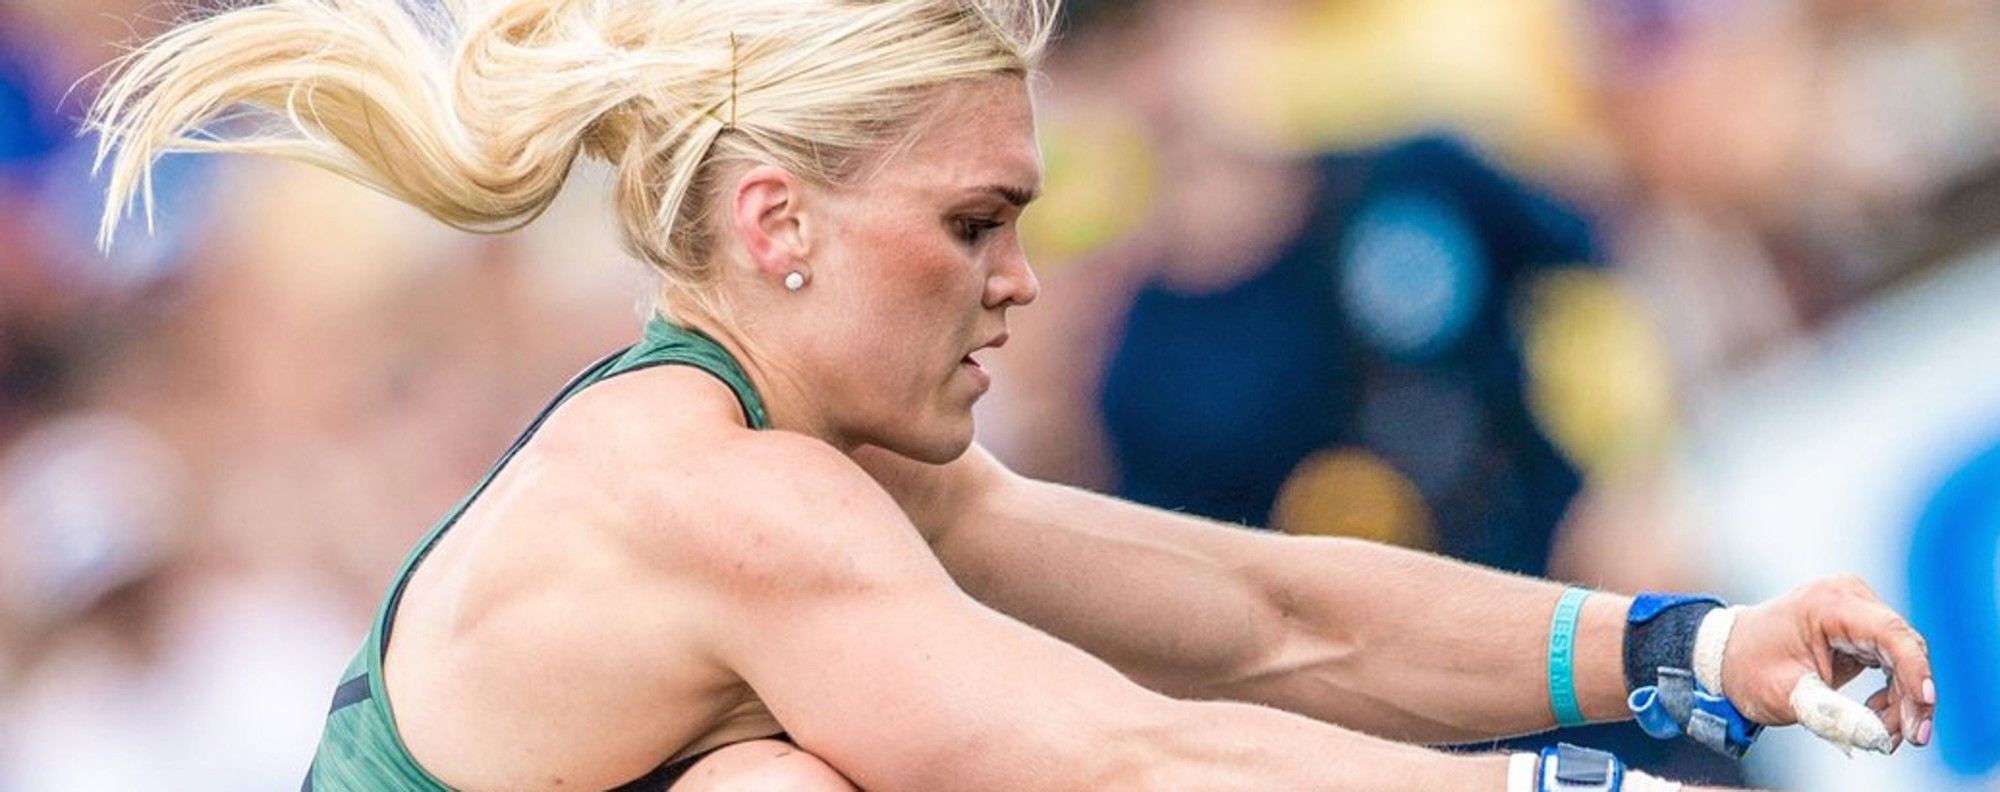 Katrin Davidsdottir says her 'moral compass' will not allow her to represent CrossFit. Photo: CrossFit Games